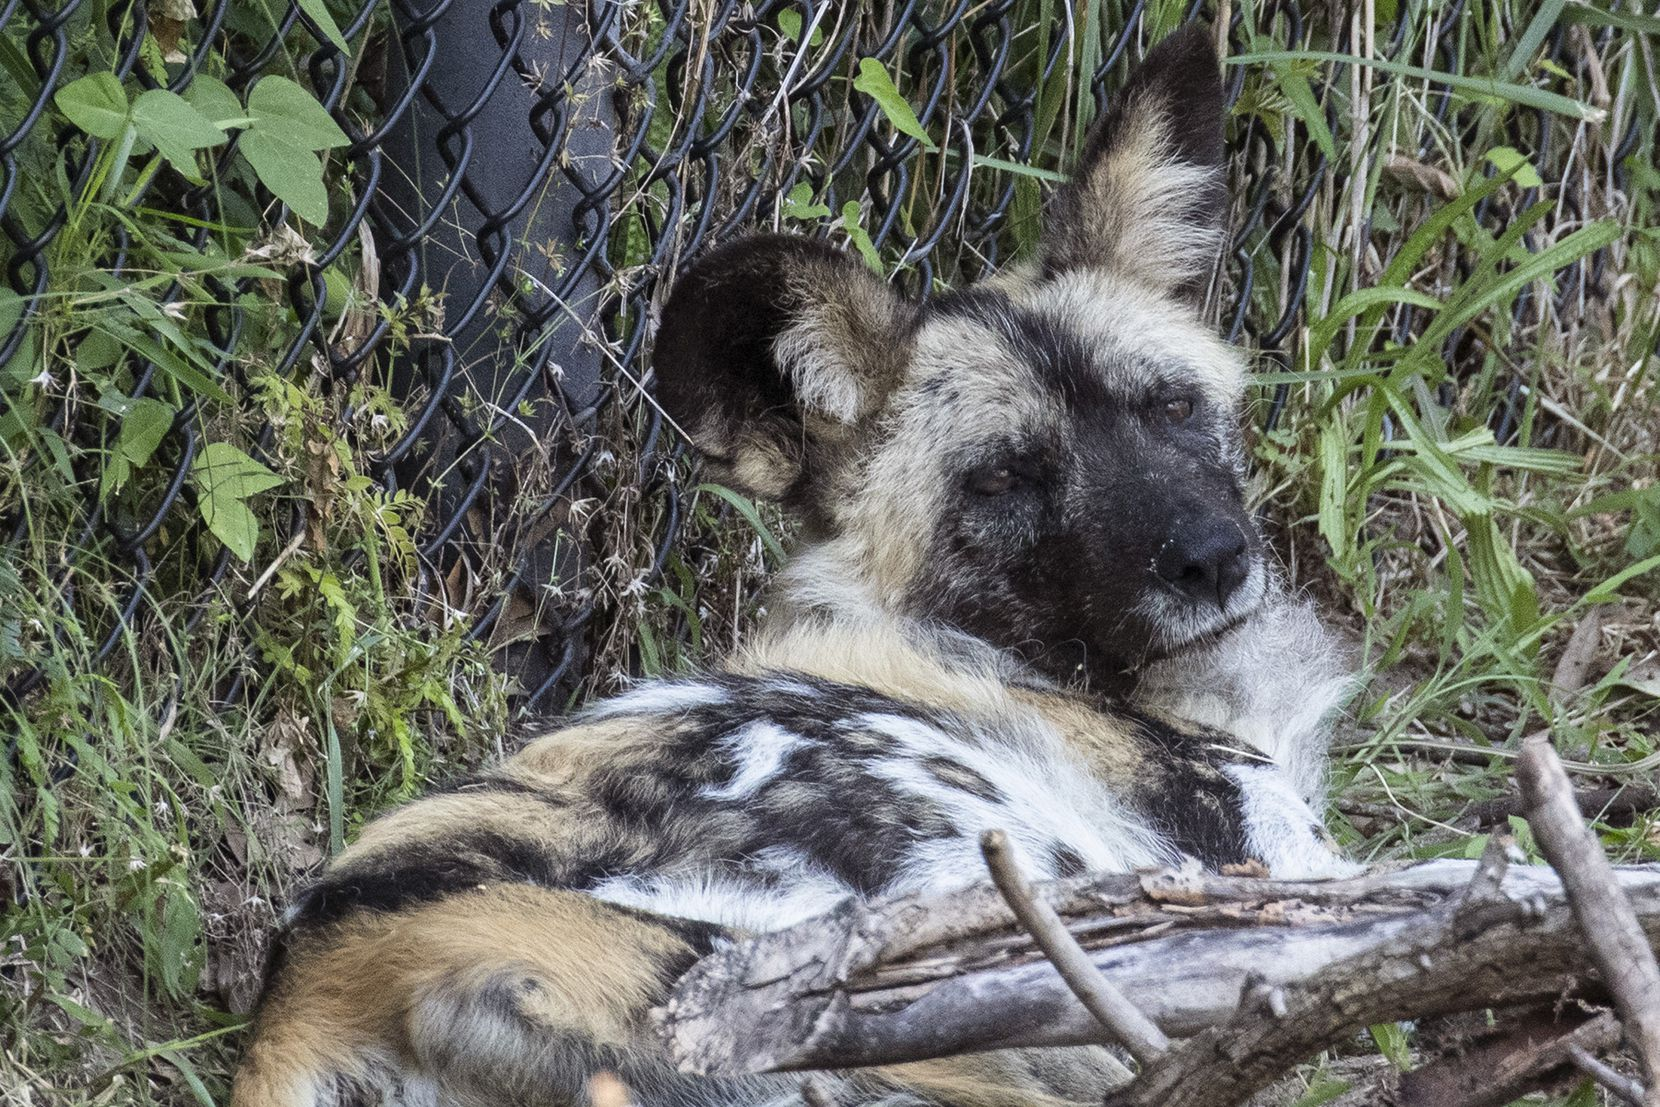 Ola, an 8-year-old female African painted dog, lies down in her habitat in the Dallas Zoo.